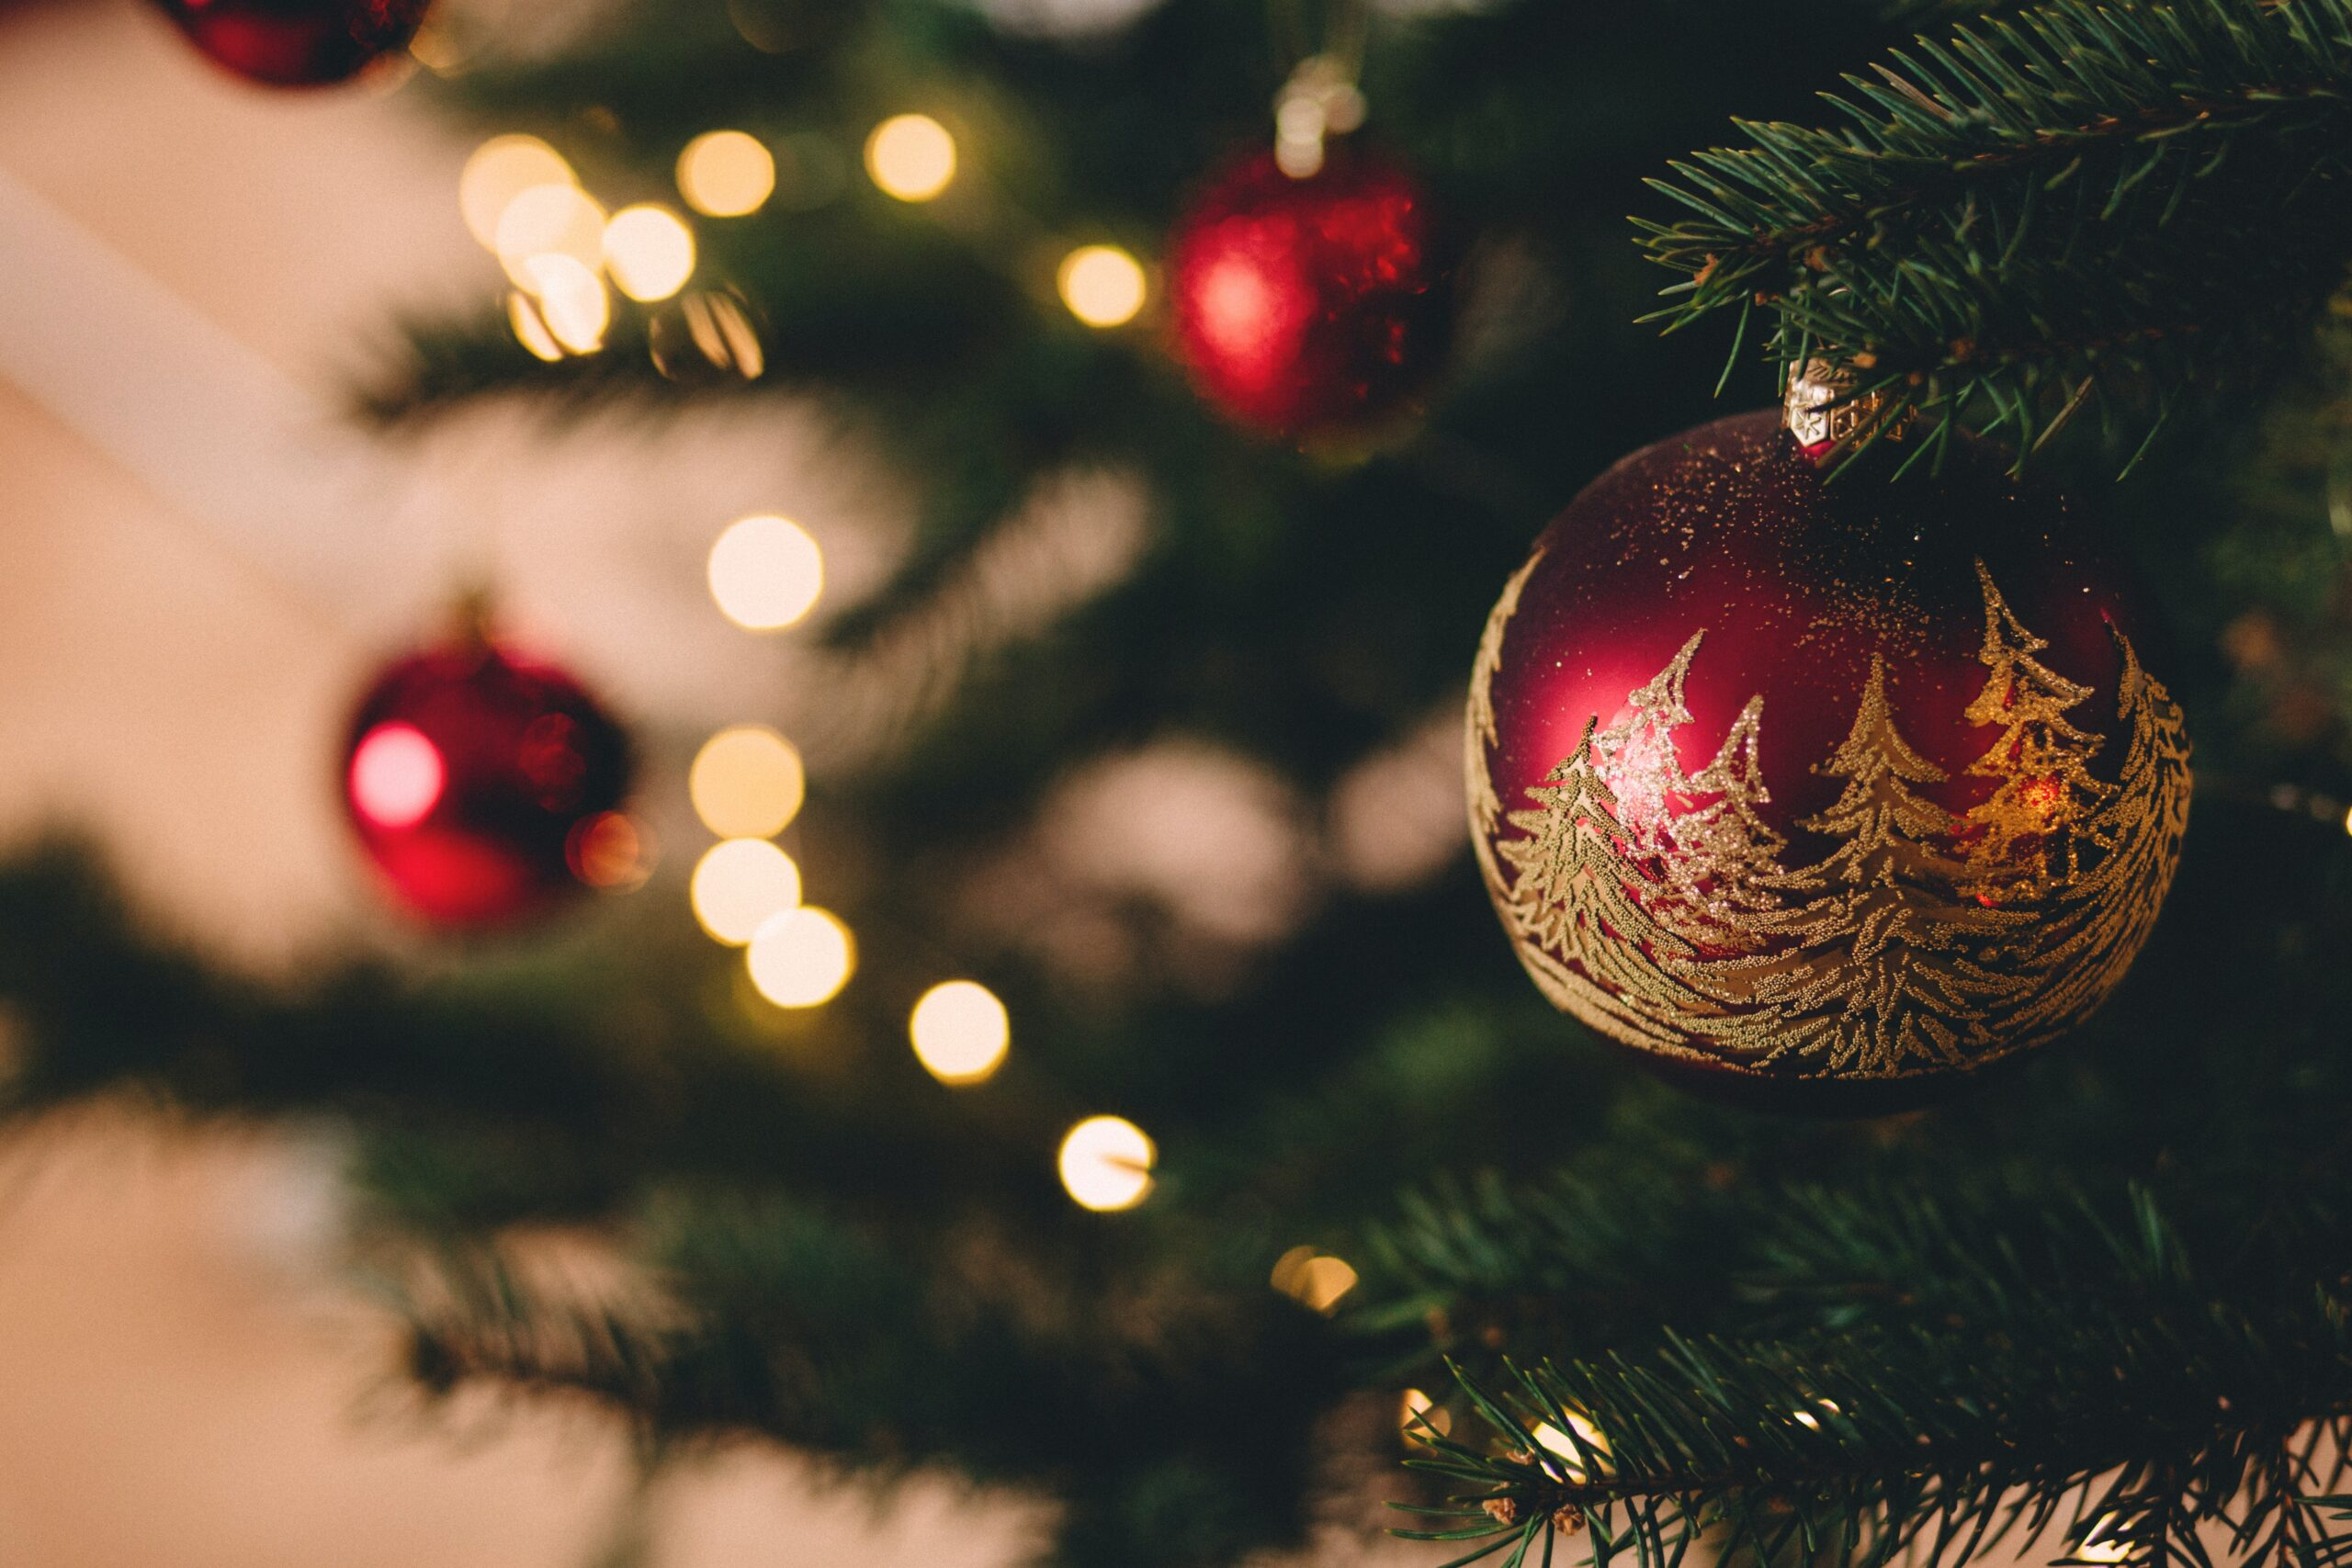 Baubles handing on Christmas tree in Polmanter's self catering accommodation for Christmas and New Year holidays